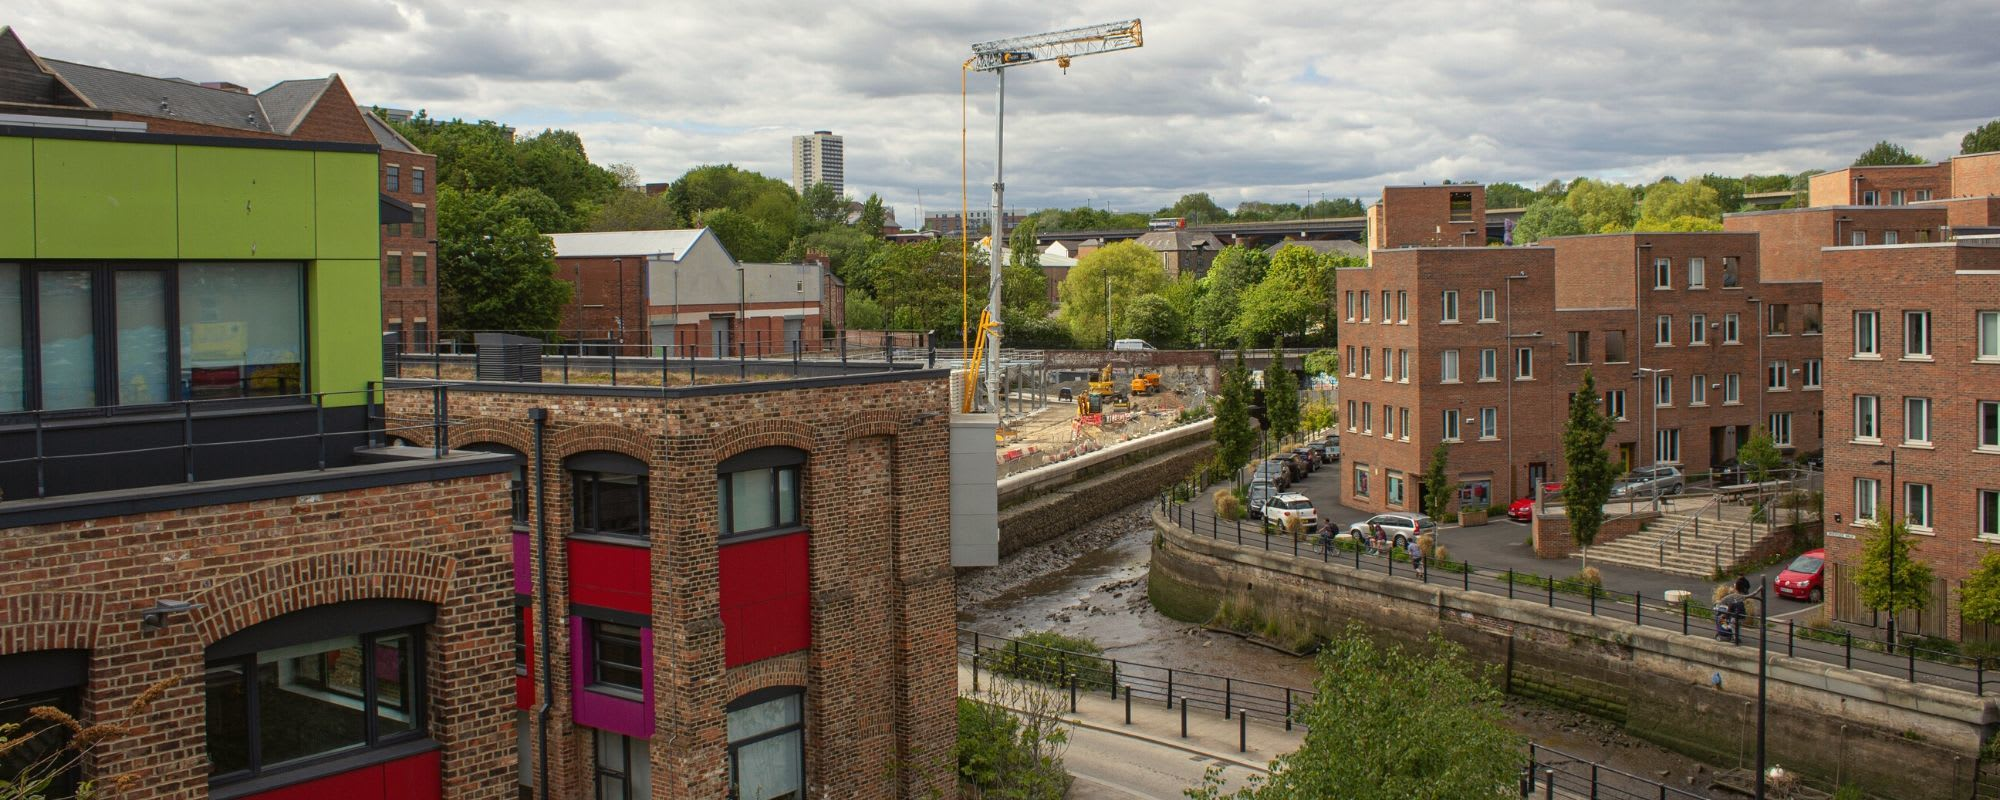 Photo of Ouseburn from glasshouse bridge which shows the Toffee Factory and the Mallings development